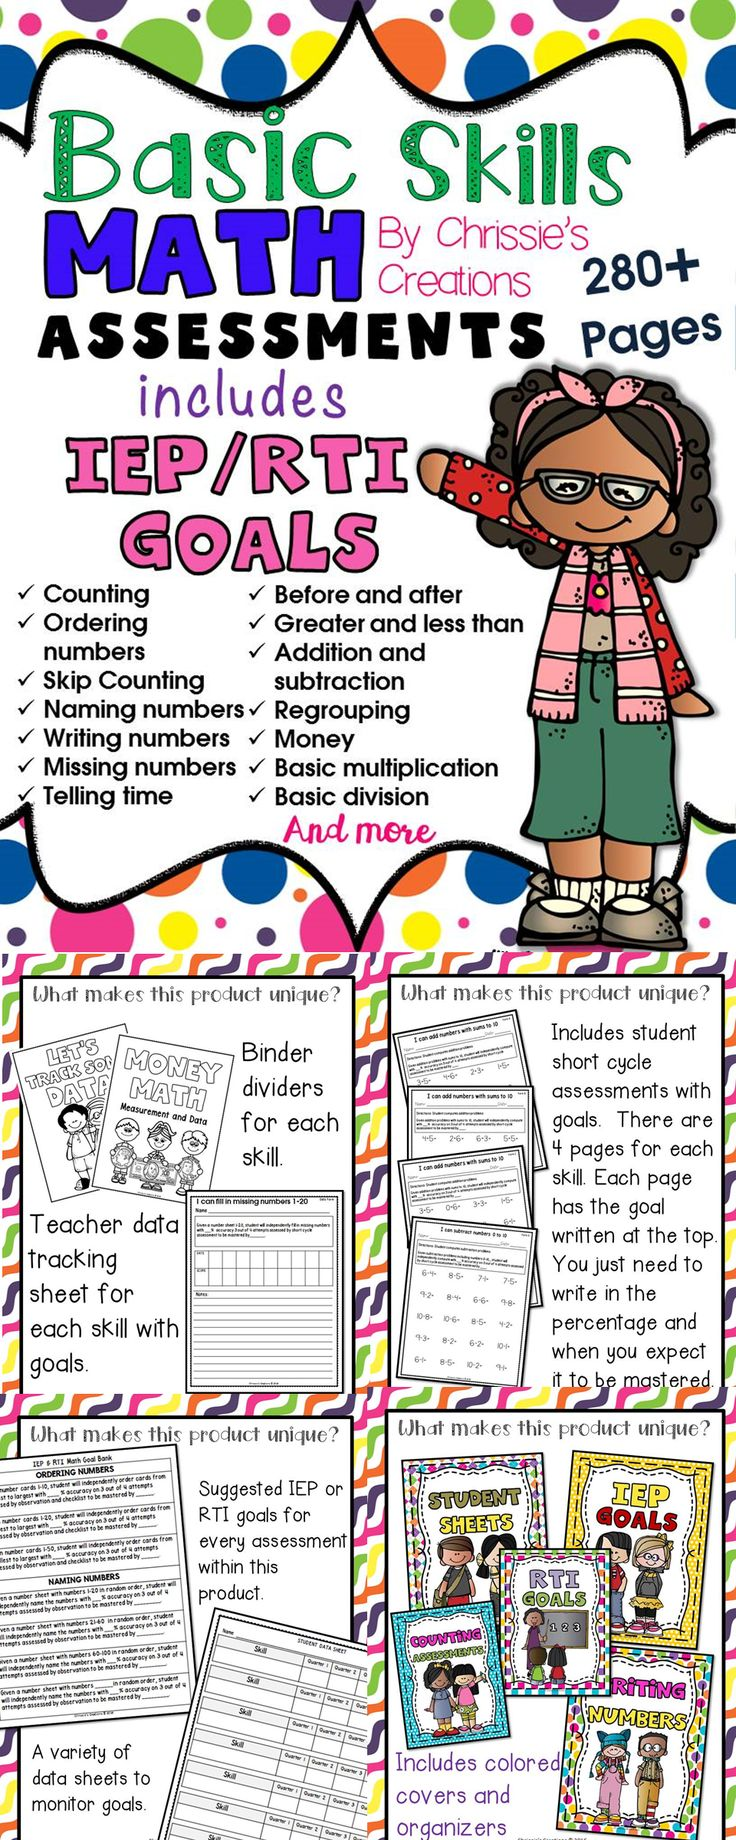 Special education basic skills math assessments is a basic binder set up for assessing students on basic skills math.  Each math assessment includes IEP Individual Education Plan and RTI response to Intervention suggested goals.  There are data sheets included as well as binder covers and dividers for each section. you must take a closer look at this product on TpT visit Chrissie's Creations to see more details and other great products.